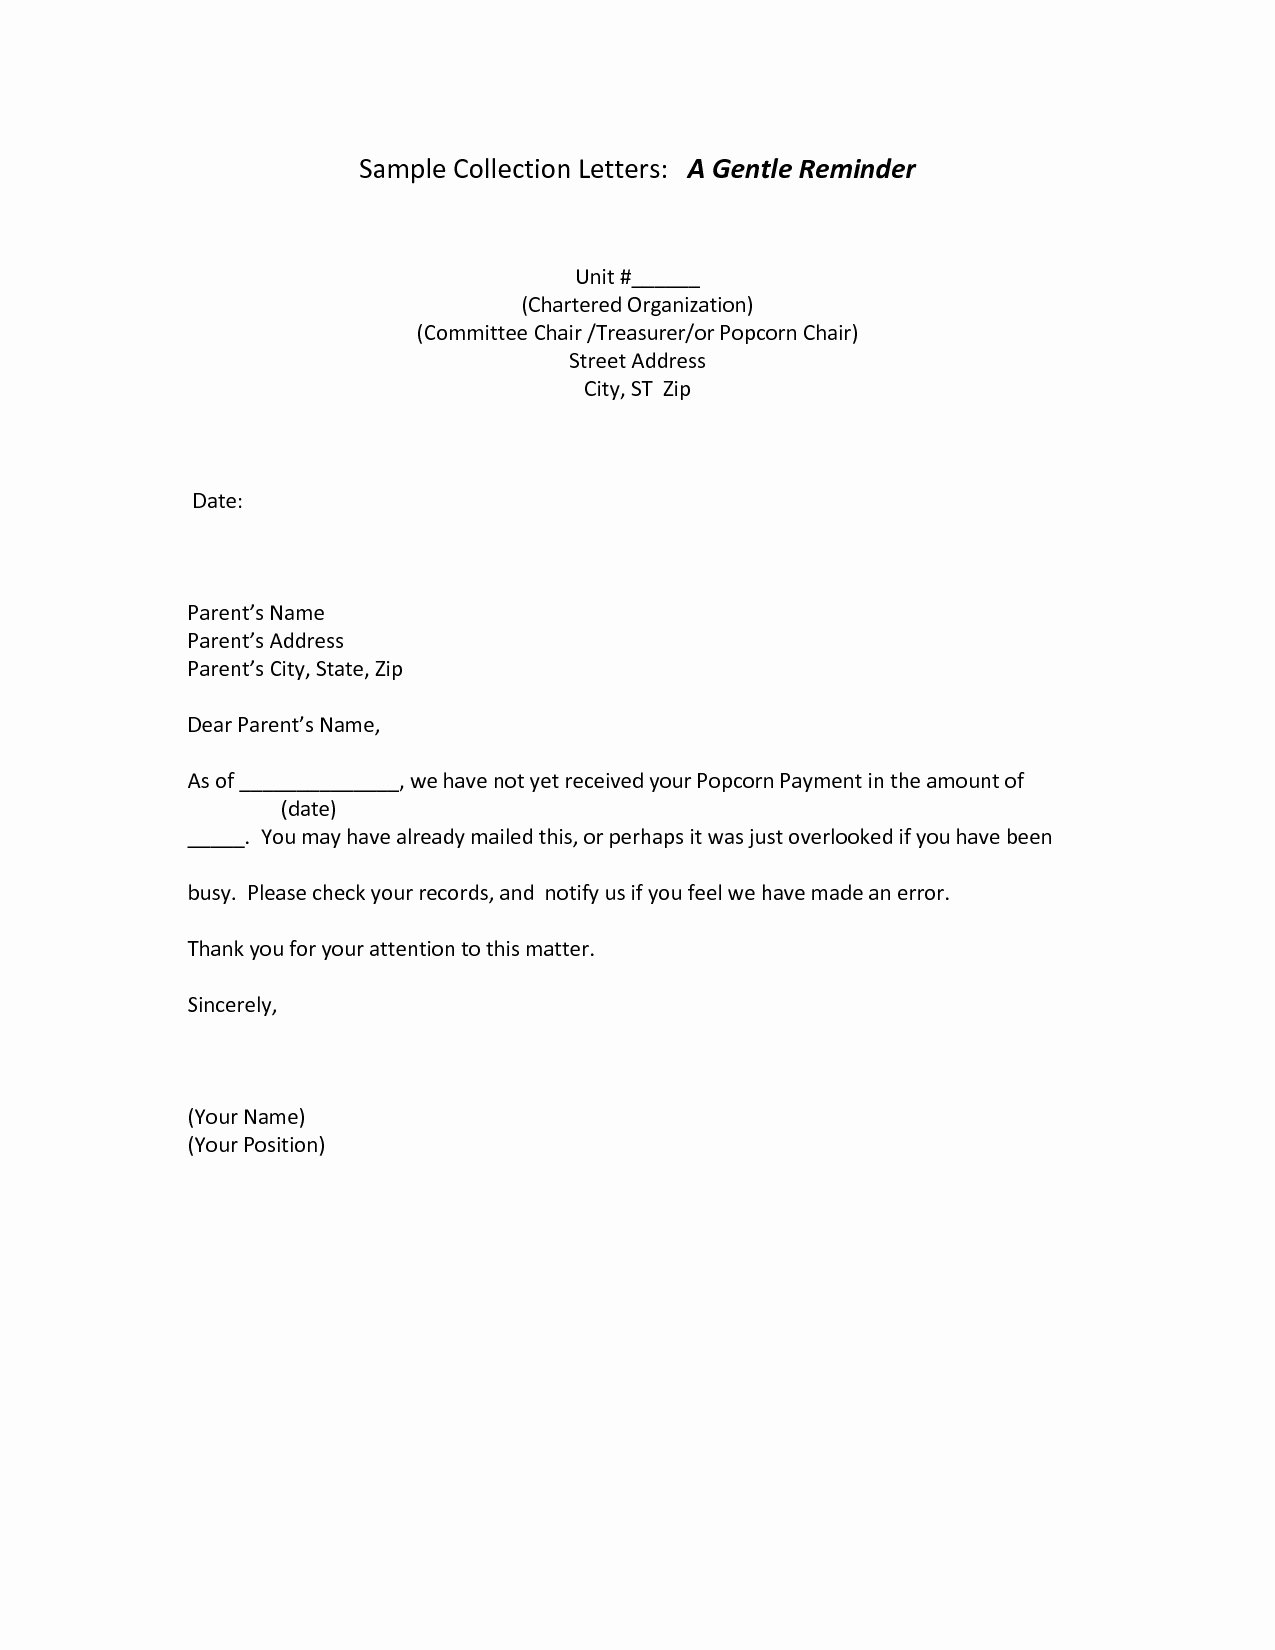 Appointment Reminder Letter Template Medical Awesome Appointment Reminder Letter Template Medical Download